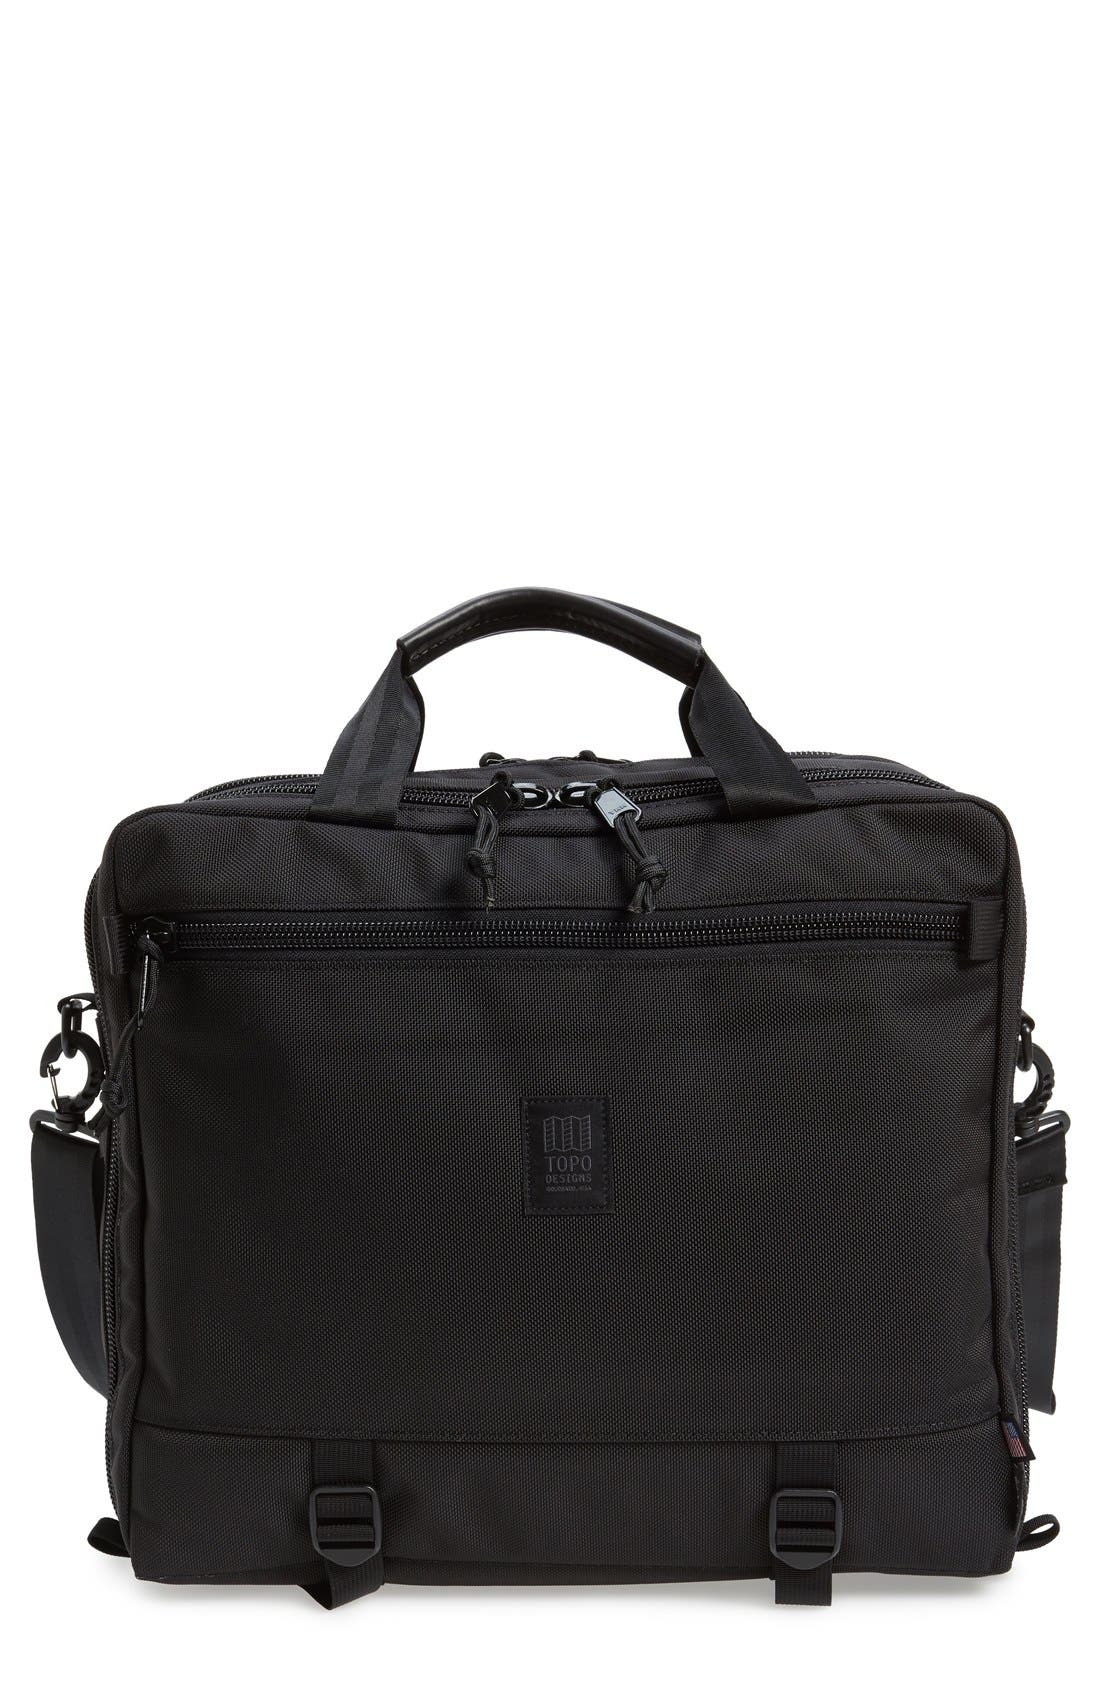 TOPO DESIGNS '3-DAY' BRIEFCASE - BLACK